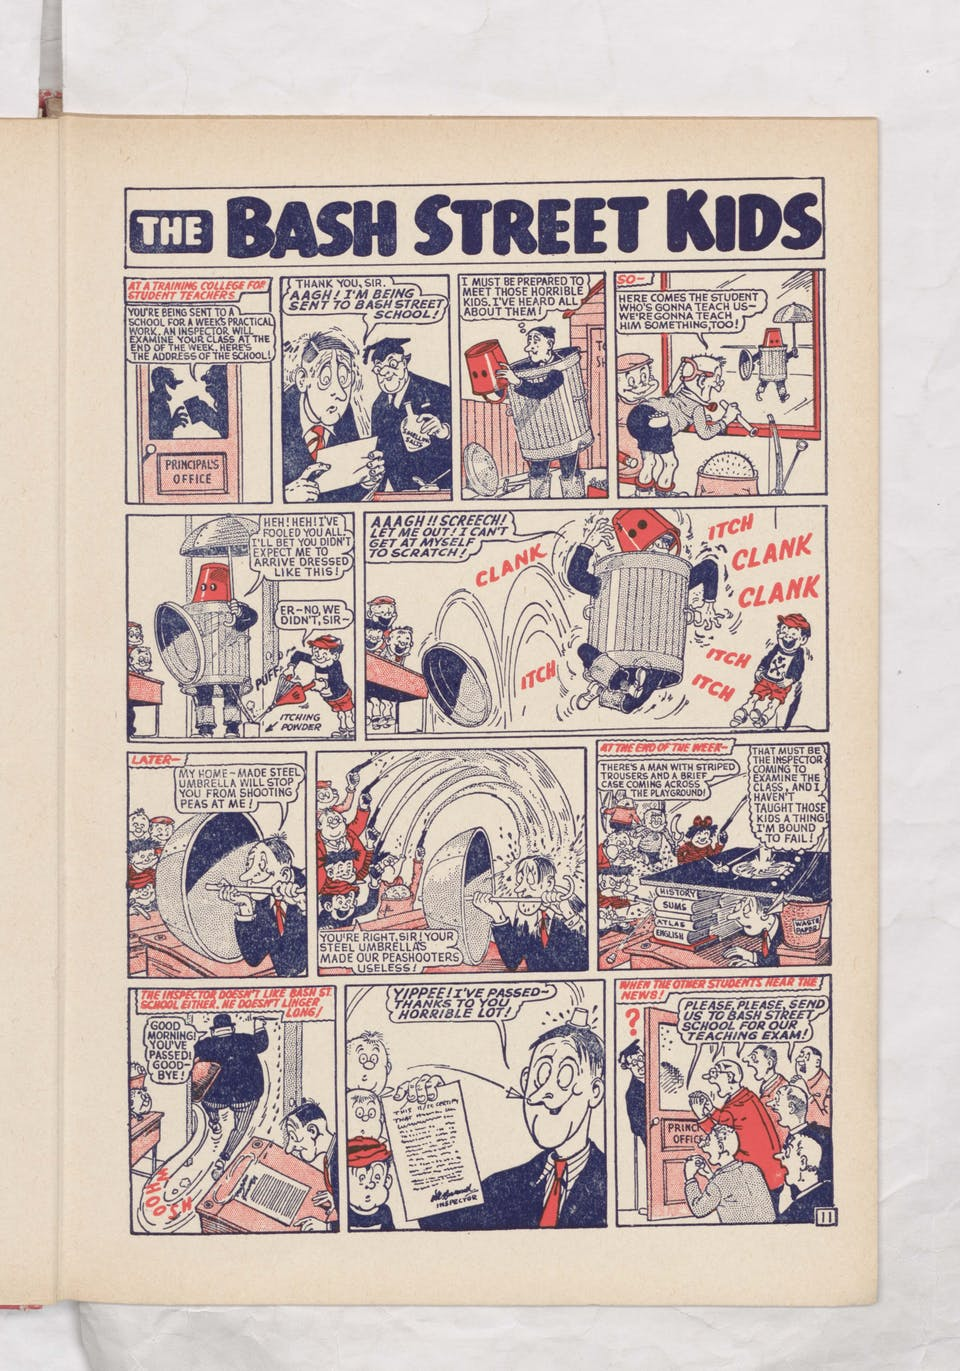 The Bash Street Kids - Beano Book 1959 Annual